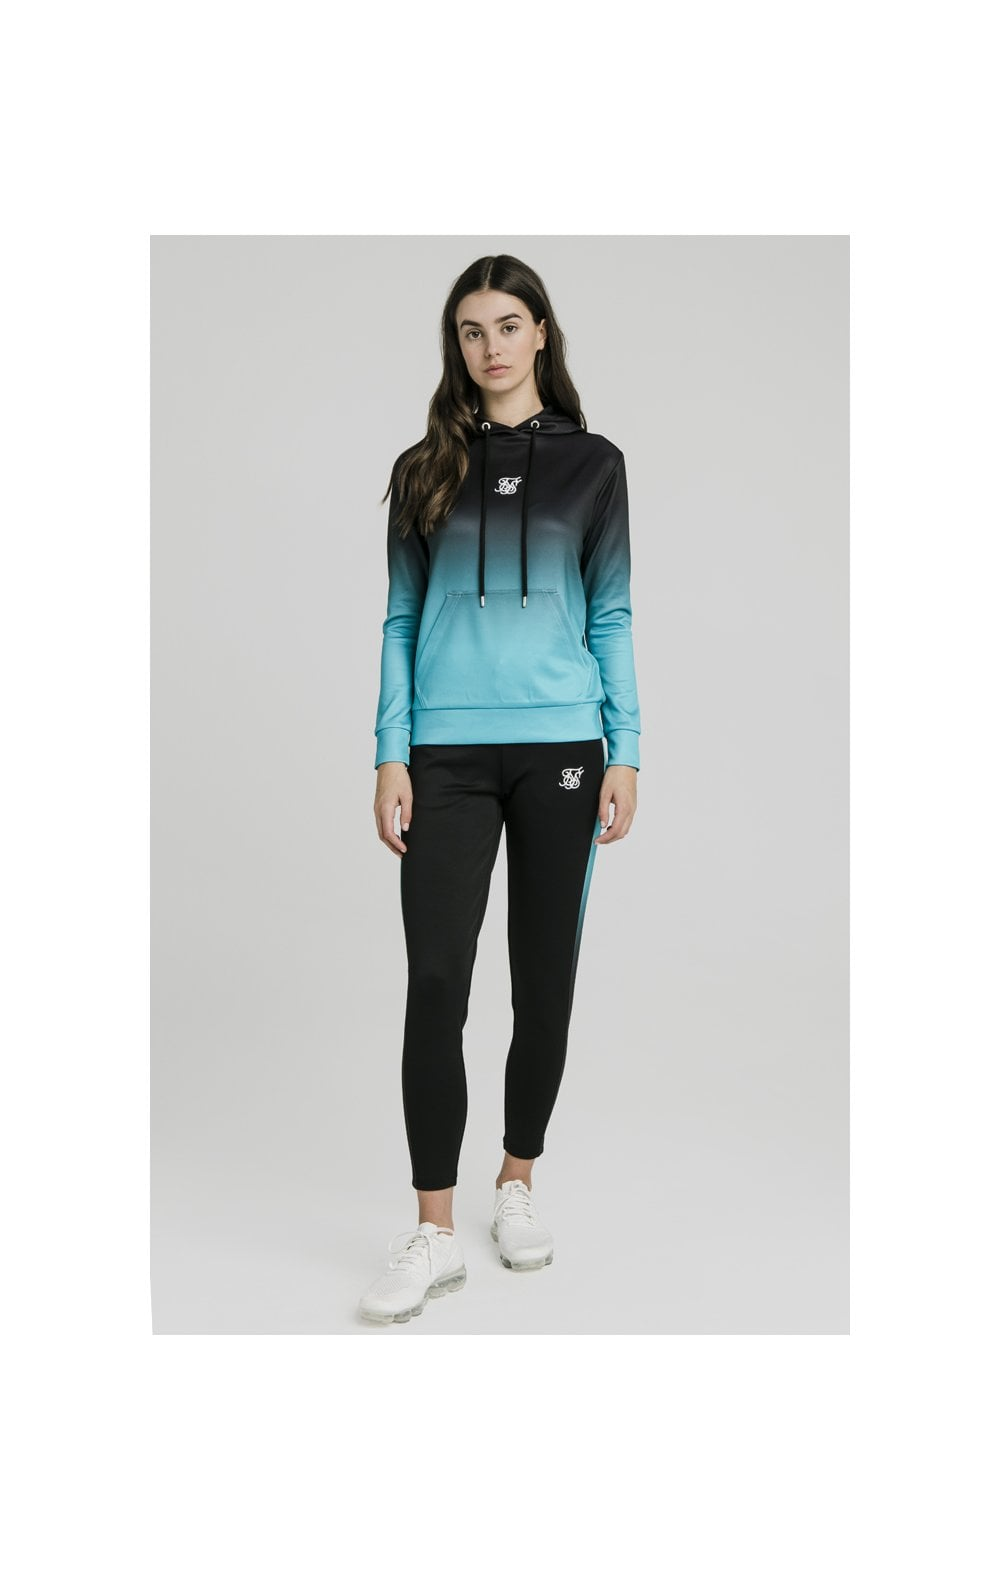 Load image into Gallery viewer, SikSilk Fade Overhead Hoodie - Black & Teal (3)